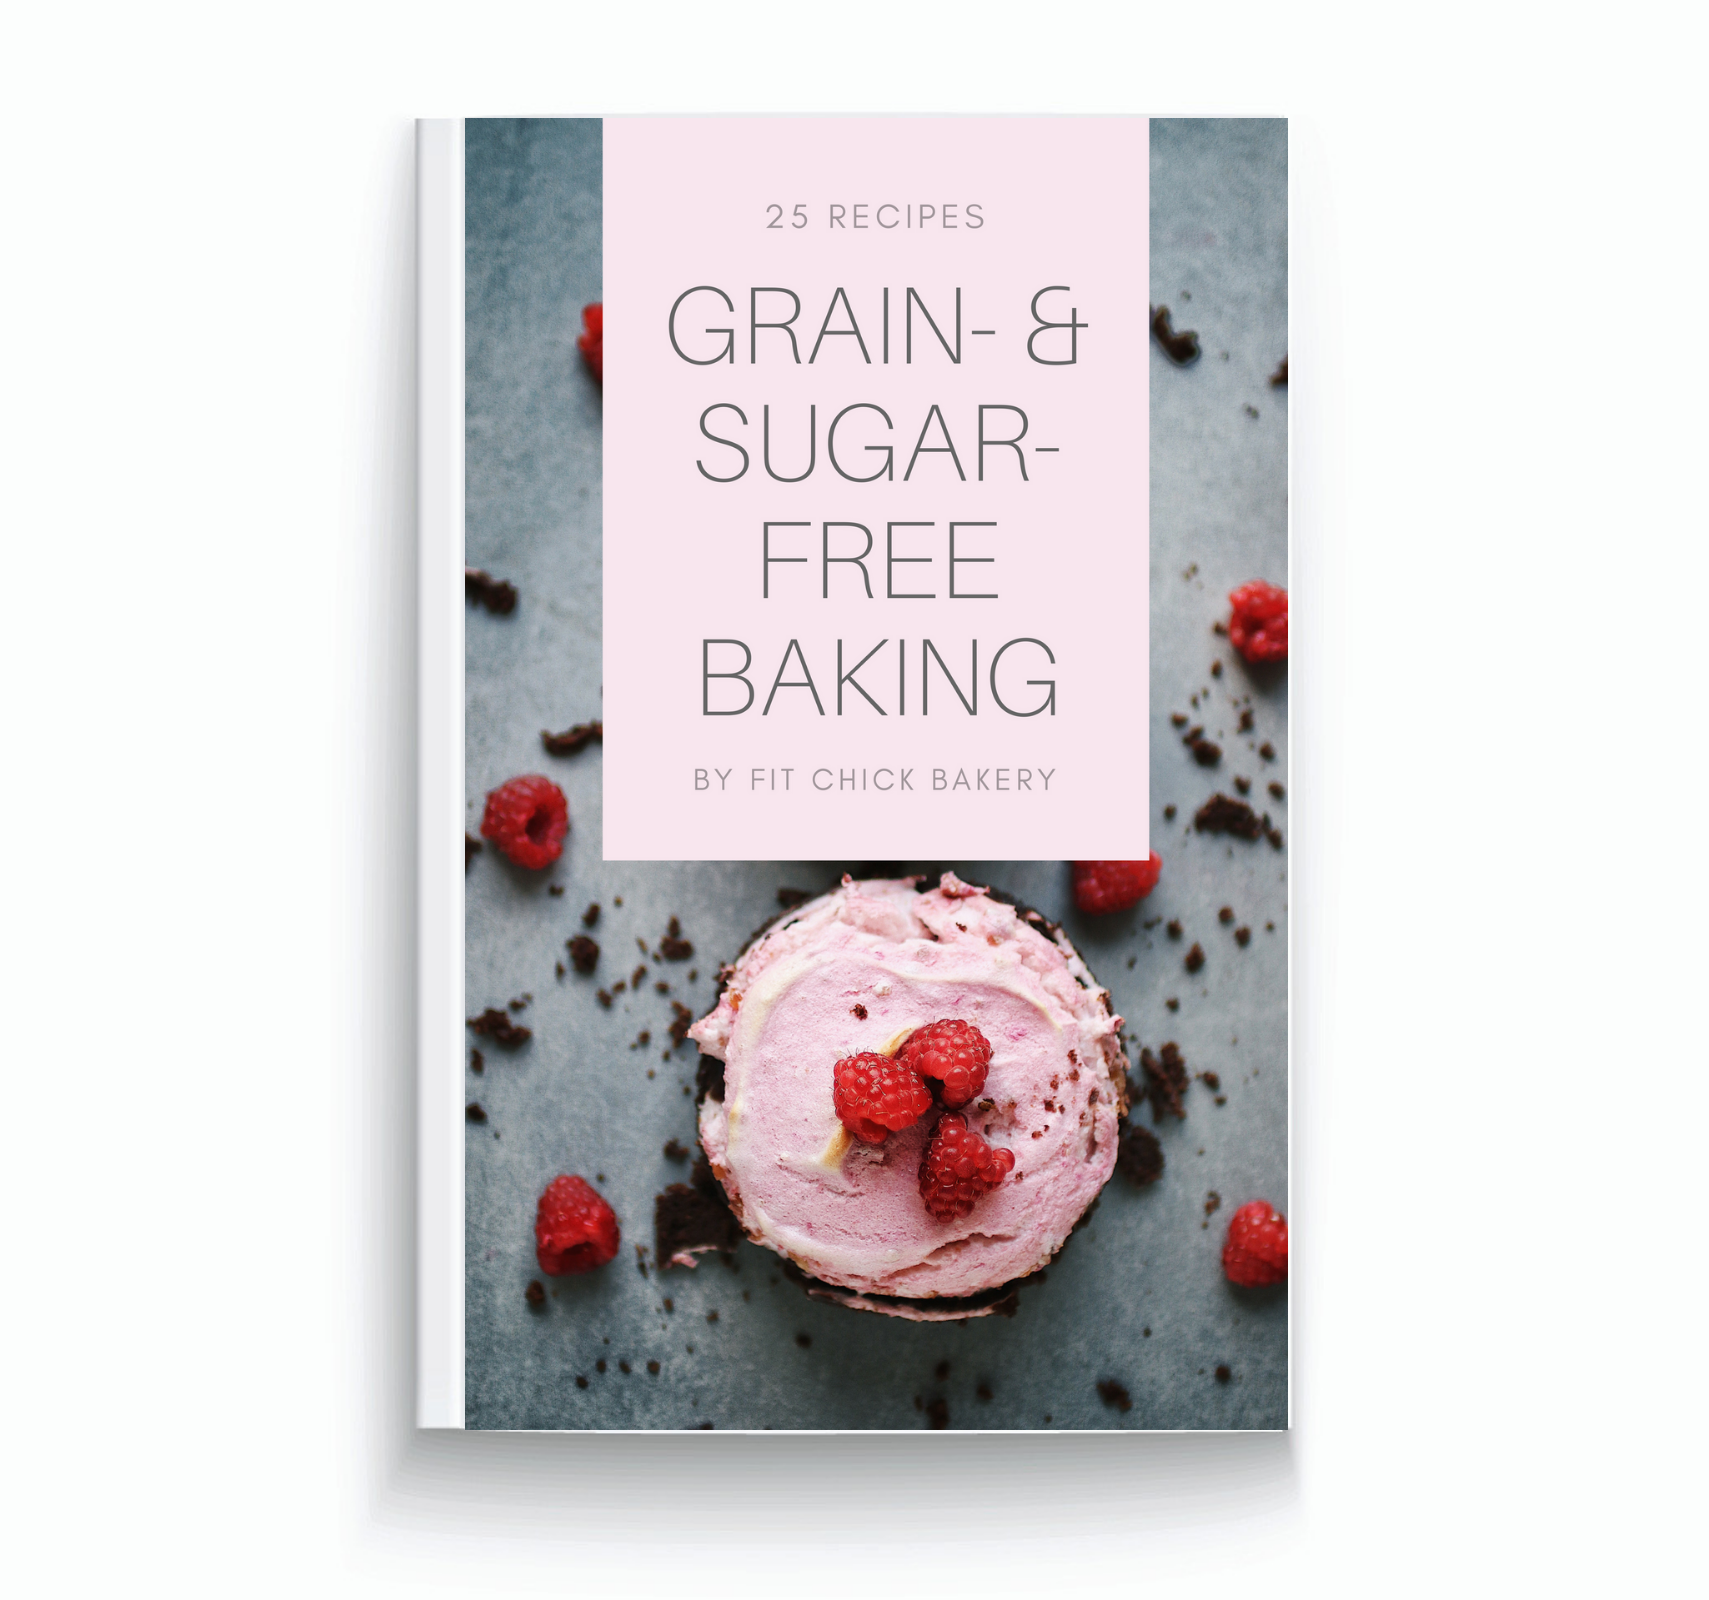 Free Ebook - Subscribe to our blog and receive a copy of25 Grain-free and Sugar-free Baking recipes.